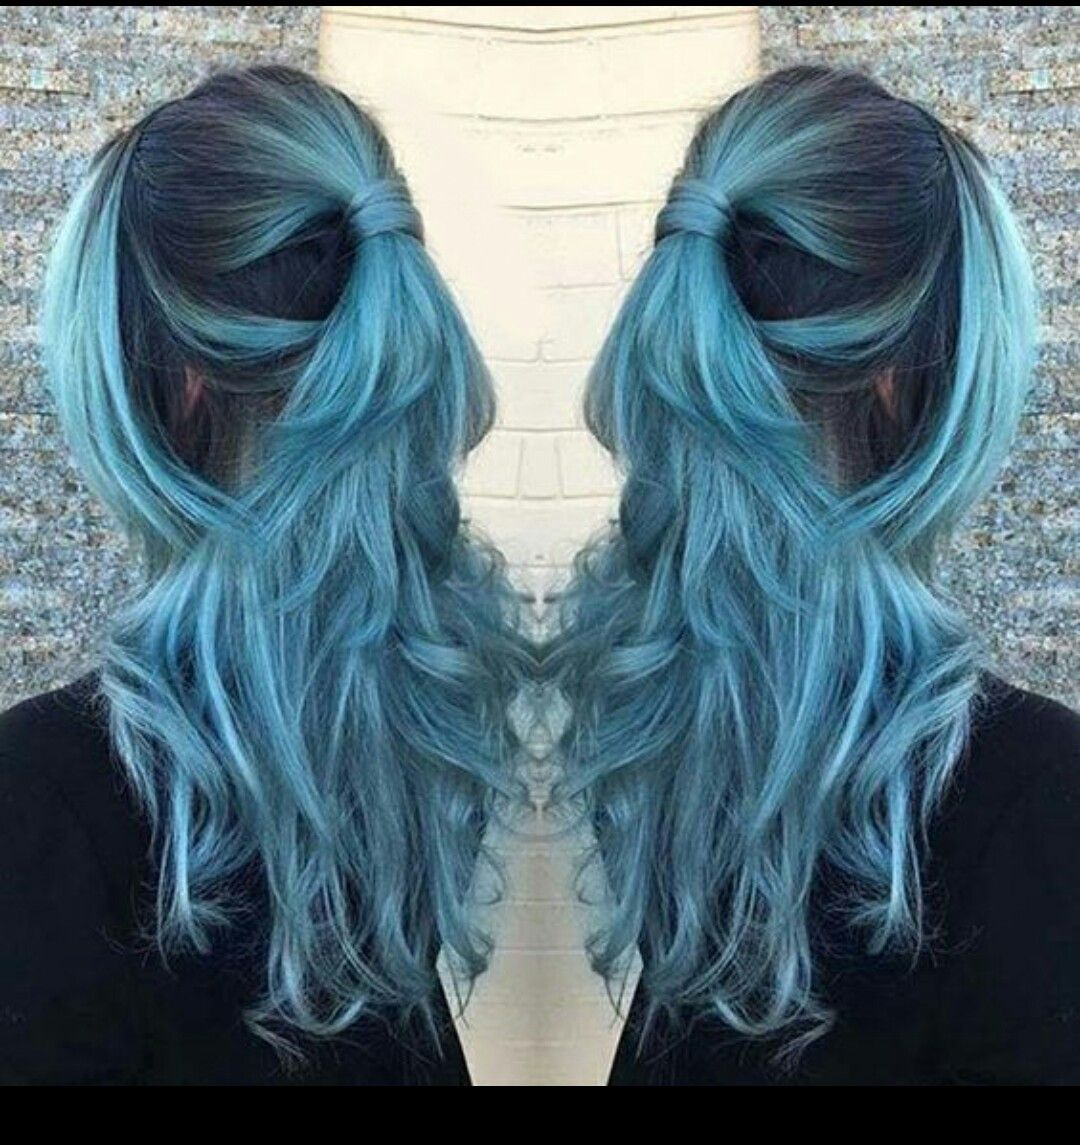 Pin by shawn macleod on hair pinterest hair coloring hair style